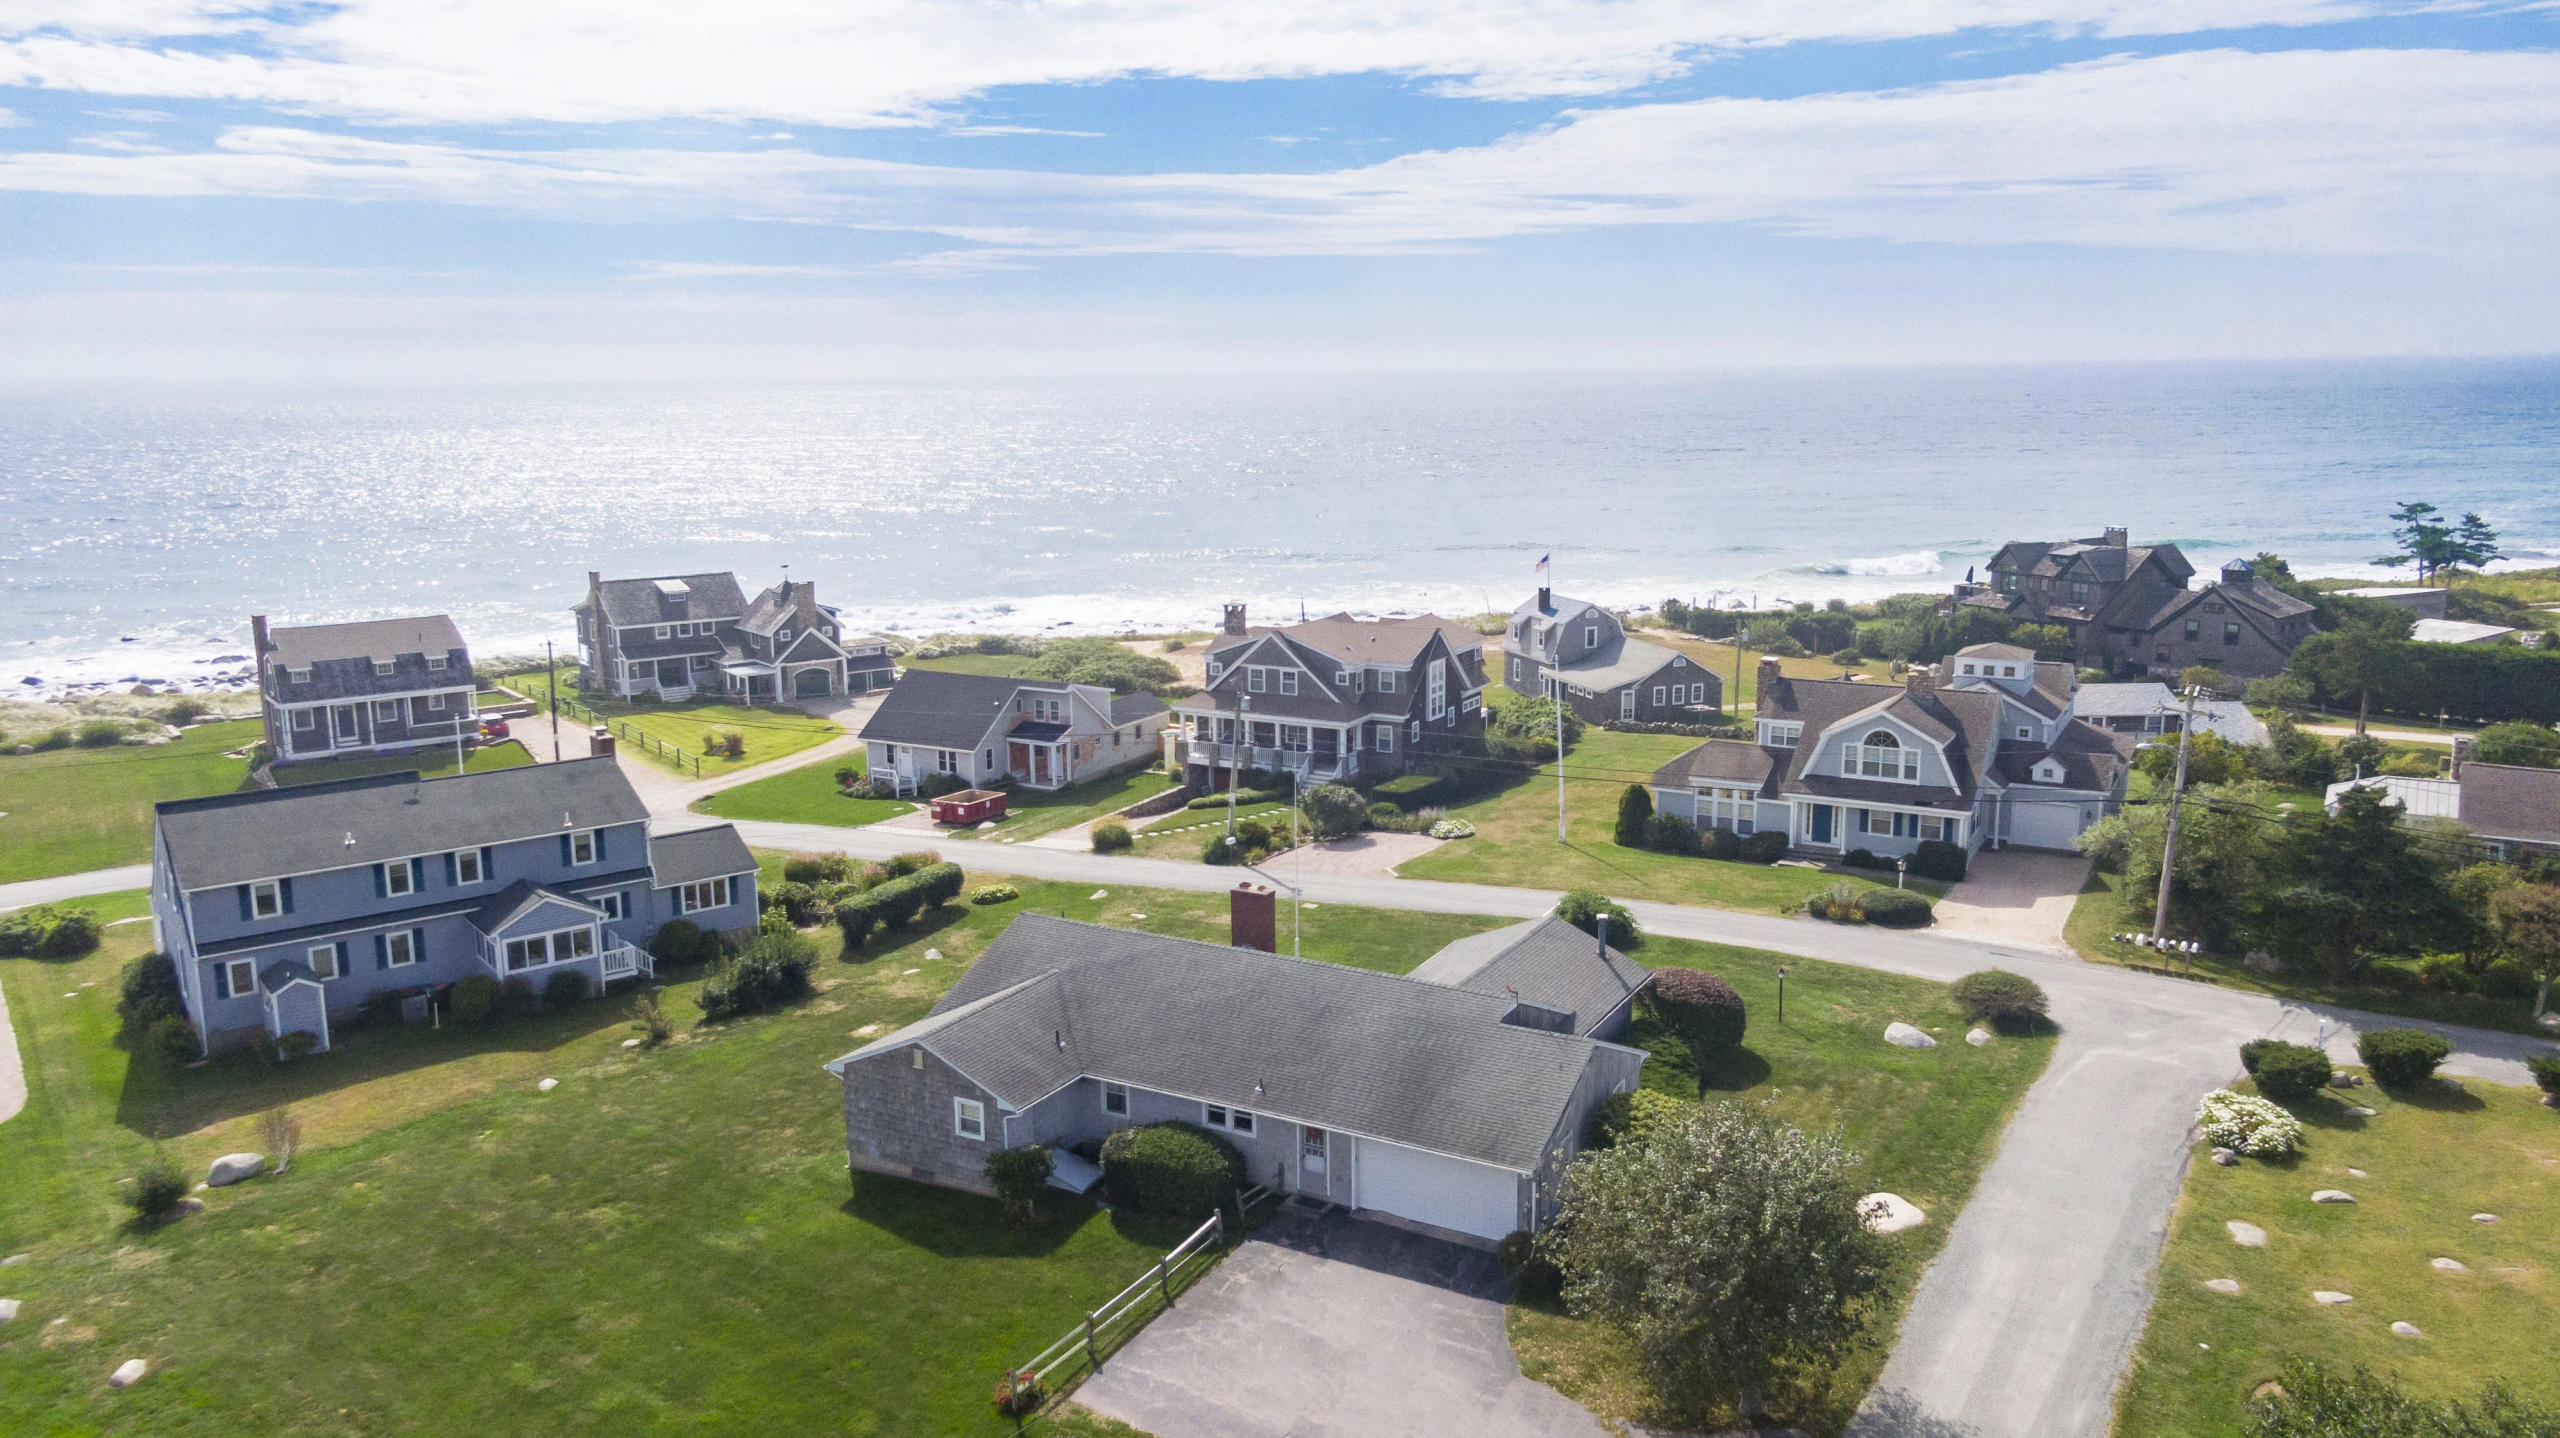 CENTRAL BEACH COTTAGE WITH OCEAN VIEWS SELLS FOR $2,000,0000, RANKING AS ONE OF THE TOP TWO SALES IN CHARLESTOWN YEAR-TO-DATE*